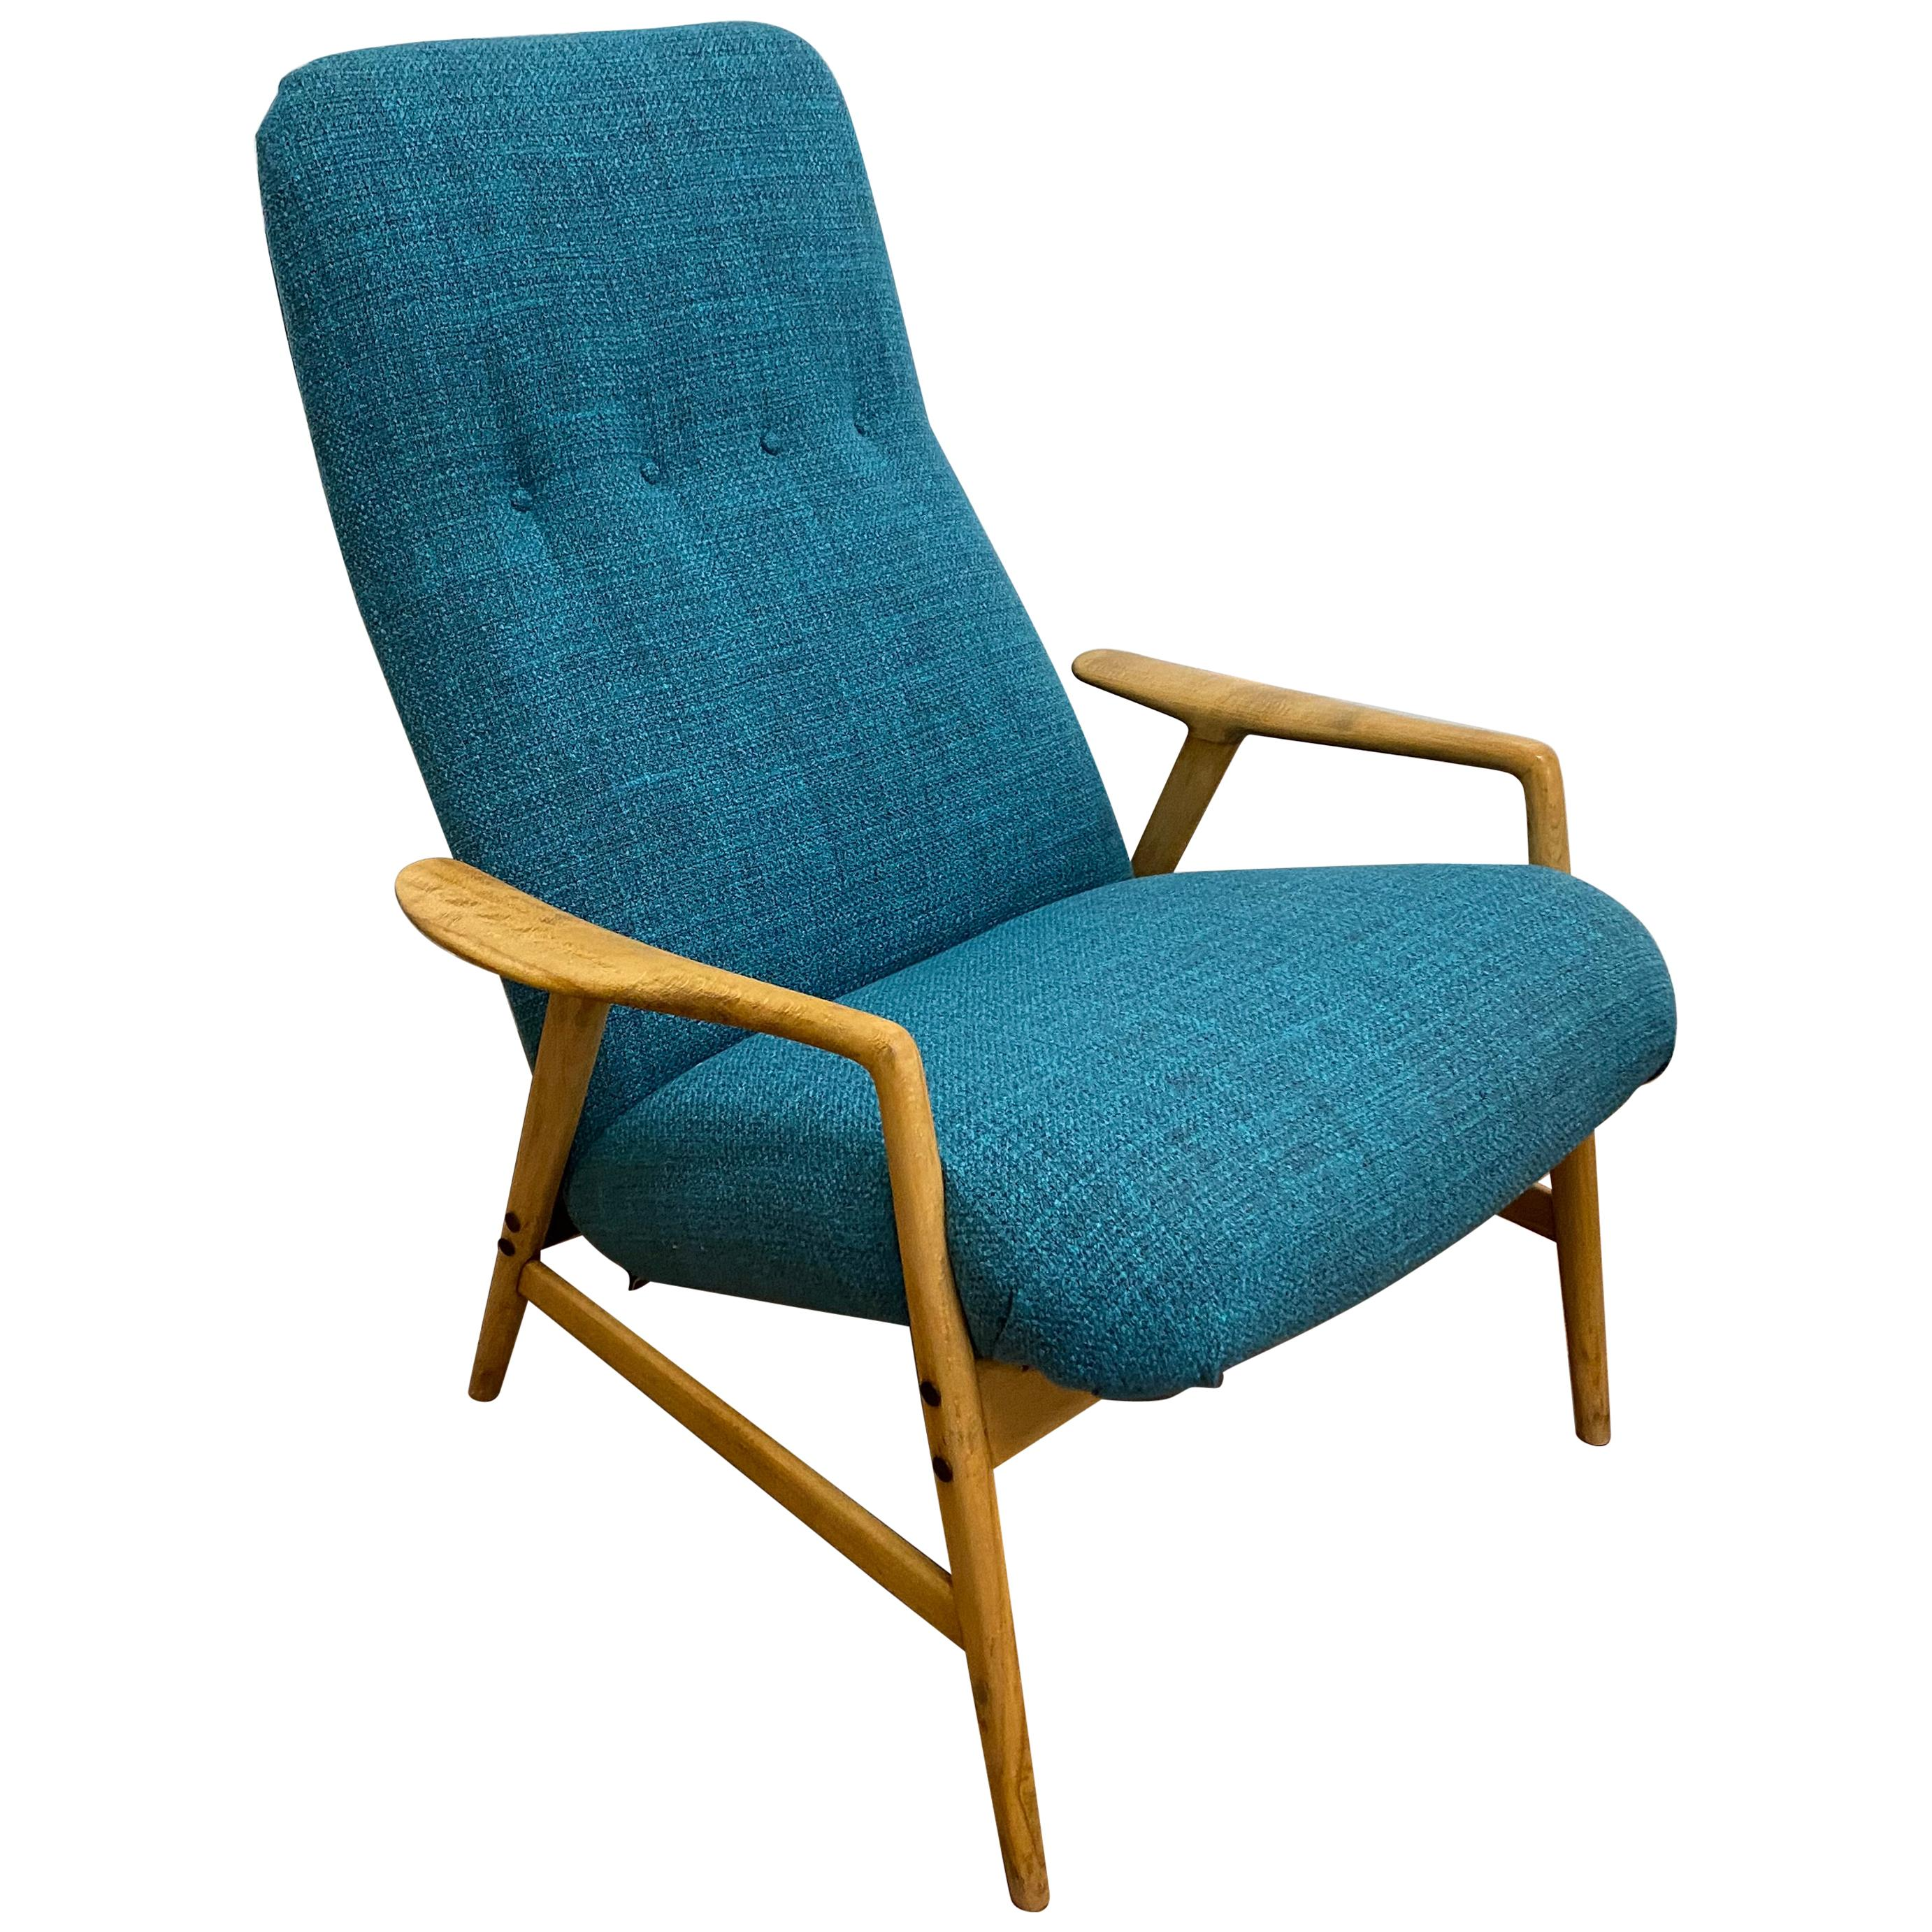 Lounge Chair by Alf Svensson for DUX